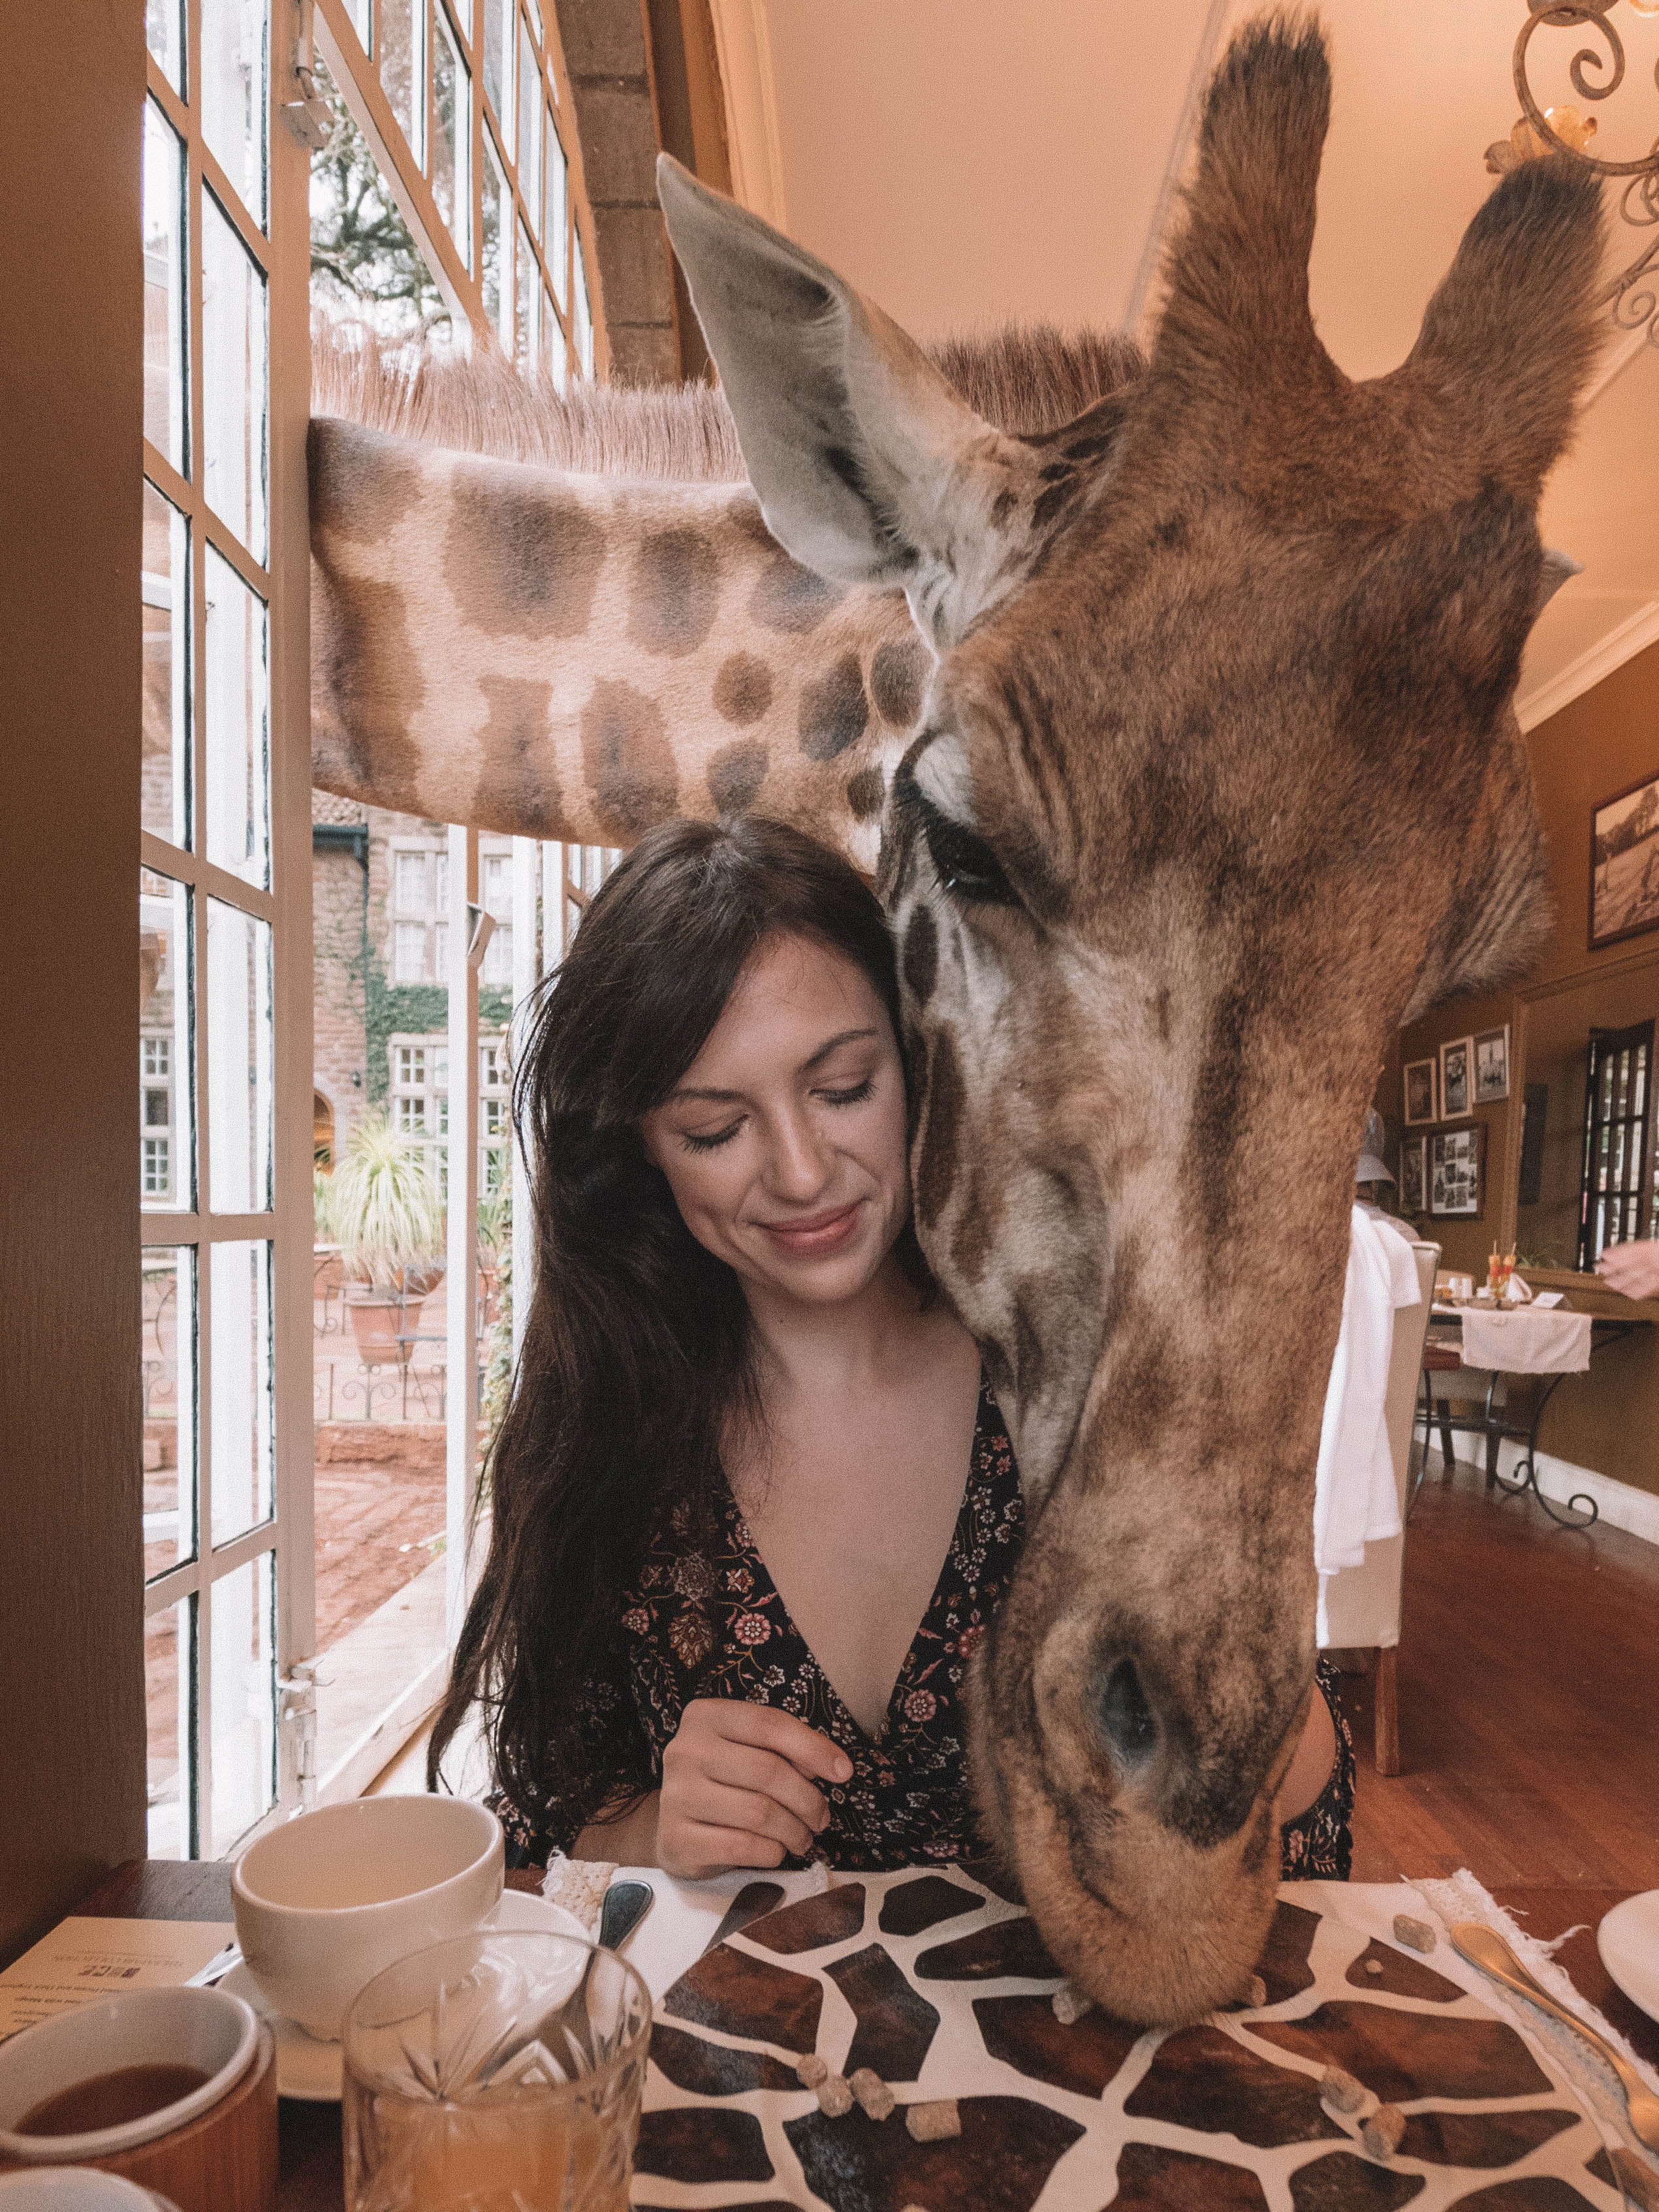 giraffe-manor-travel-blog-nairobi-kenya-solo-travelling-the-world